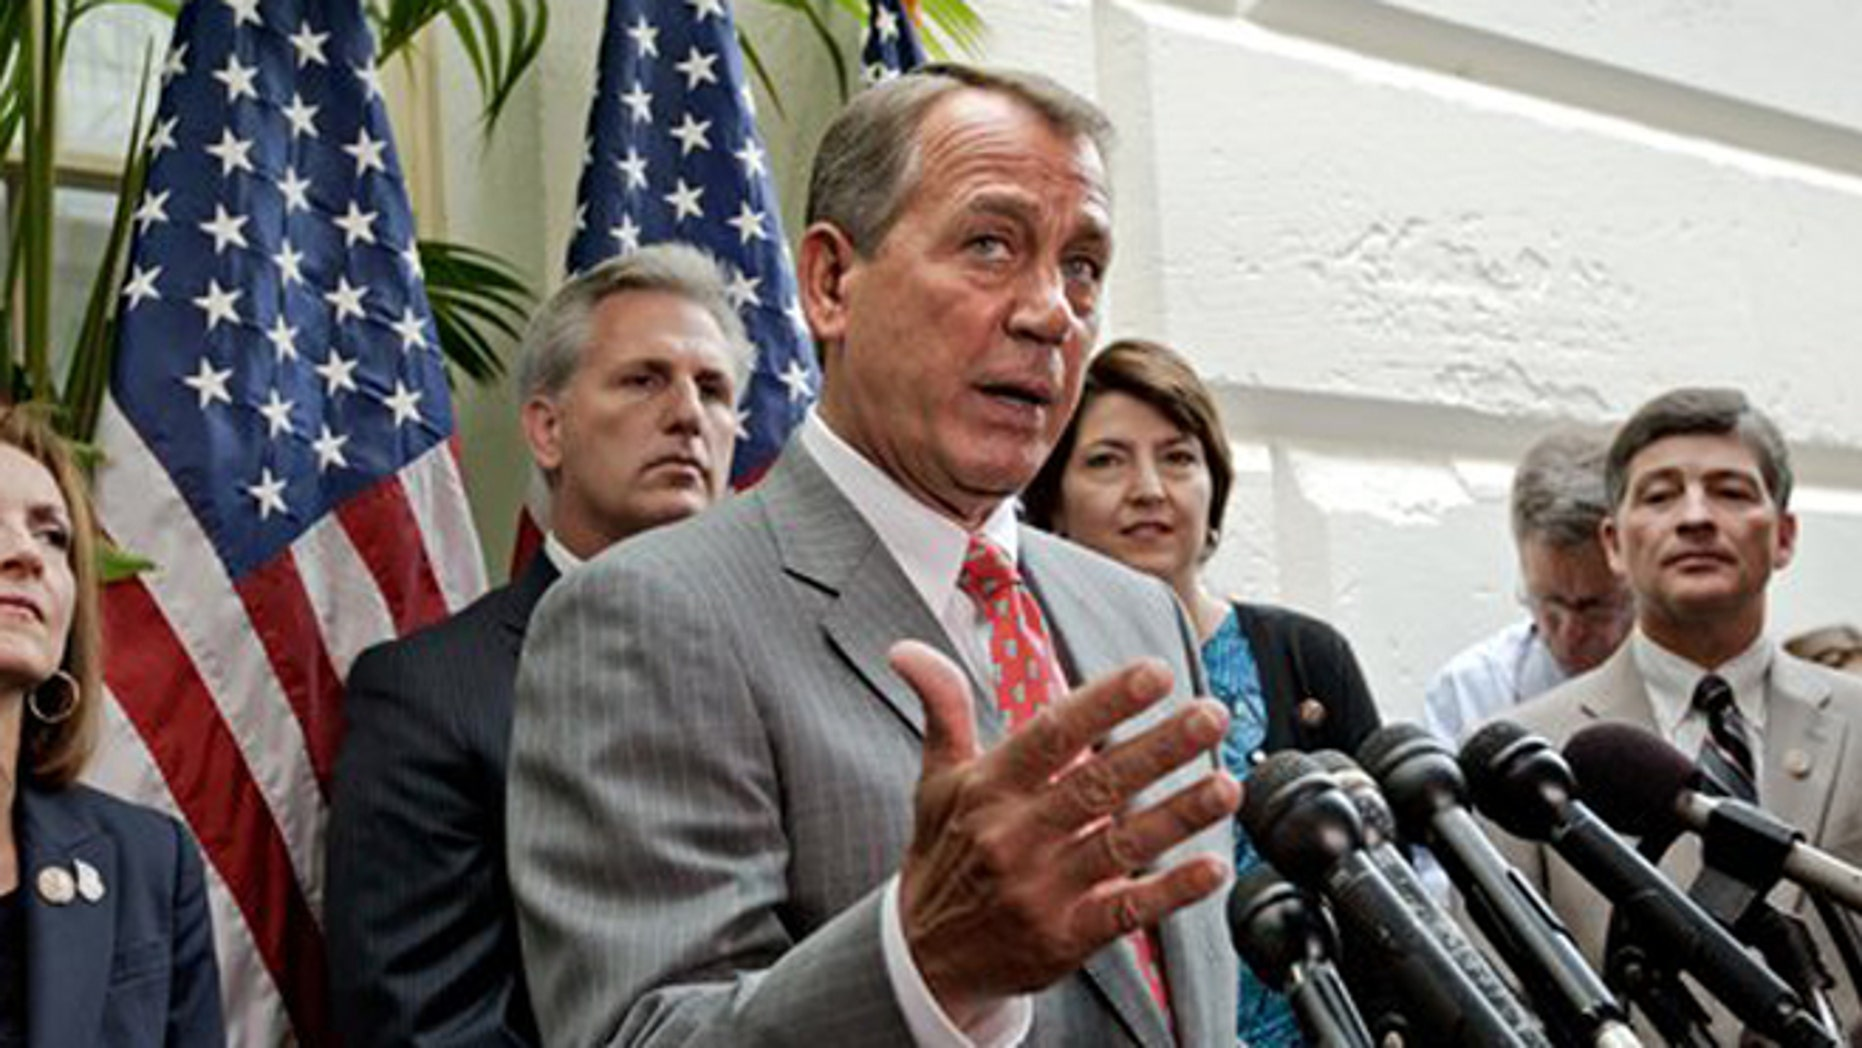 FILE - In this July 10, 2012, file photo, House Speaker John Boehner, R-Ohio, speak to the media at the Capitol in Washington, as Rep. Nan Hayworth, R-NY., House Majority Whip Kevin McCarthy, R-Calif., House Speaker John Boehner, Rep. Cathy McMorris Rodgers, R-Wash., and Rep. Jeb Hensarling, R-Texas, listen. Senate-passed bills to cut farm subsidies and food stamps and overhaul the financially distraught Postal Service have been put on hold by House Republican leaders wary of igniting internal party fights or risking voters' ire three months before the election. (AP Photo/J. Scott Applewhite)